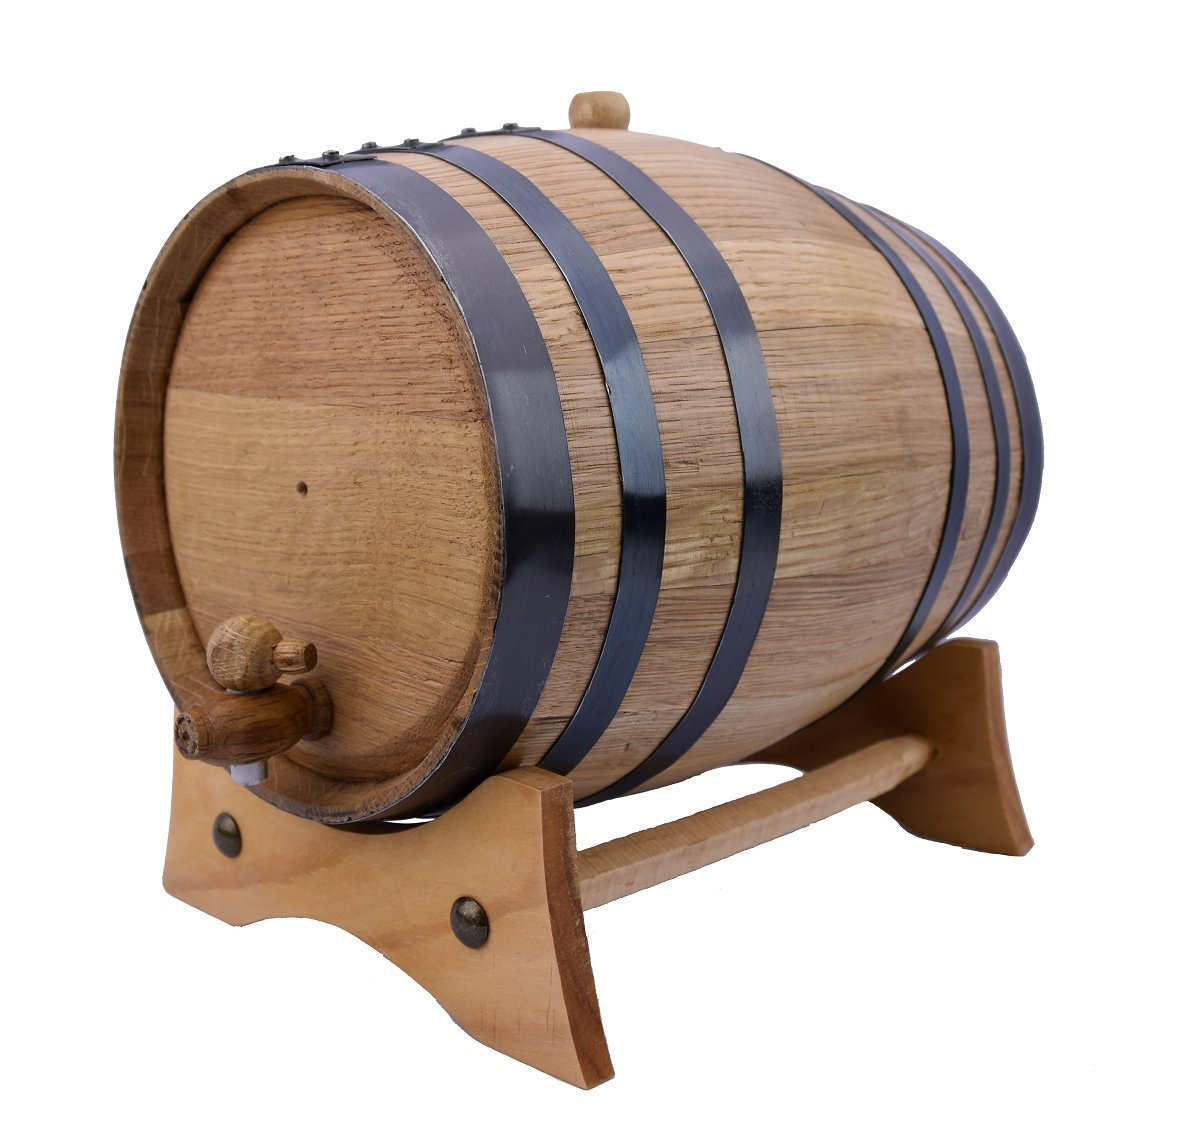 Sofia's Findings 5 Liters-American Oak Aging Barrel | Age Your own Tequila, Whiskey, Rum, Bourbon, Wine - 5 Liter or 1.32 Gallons by Sofia's Findings